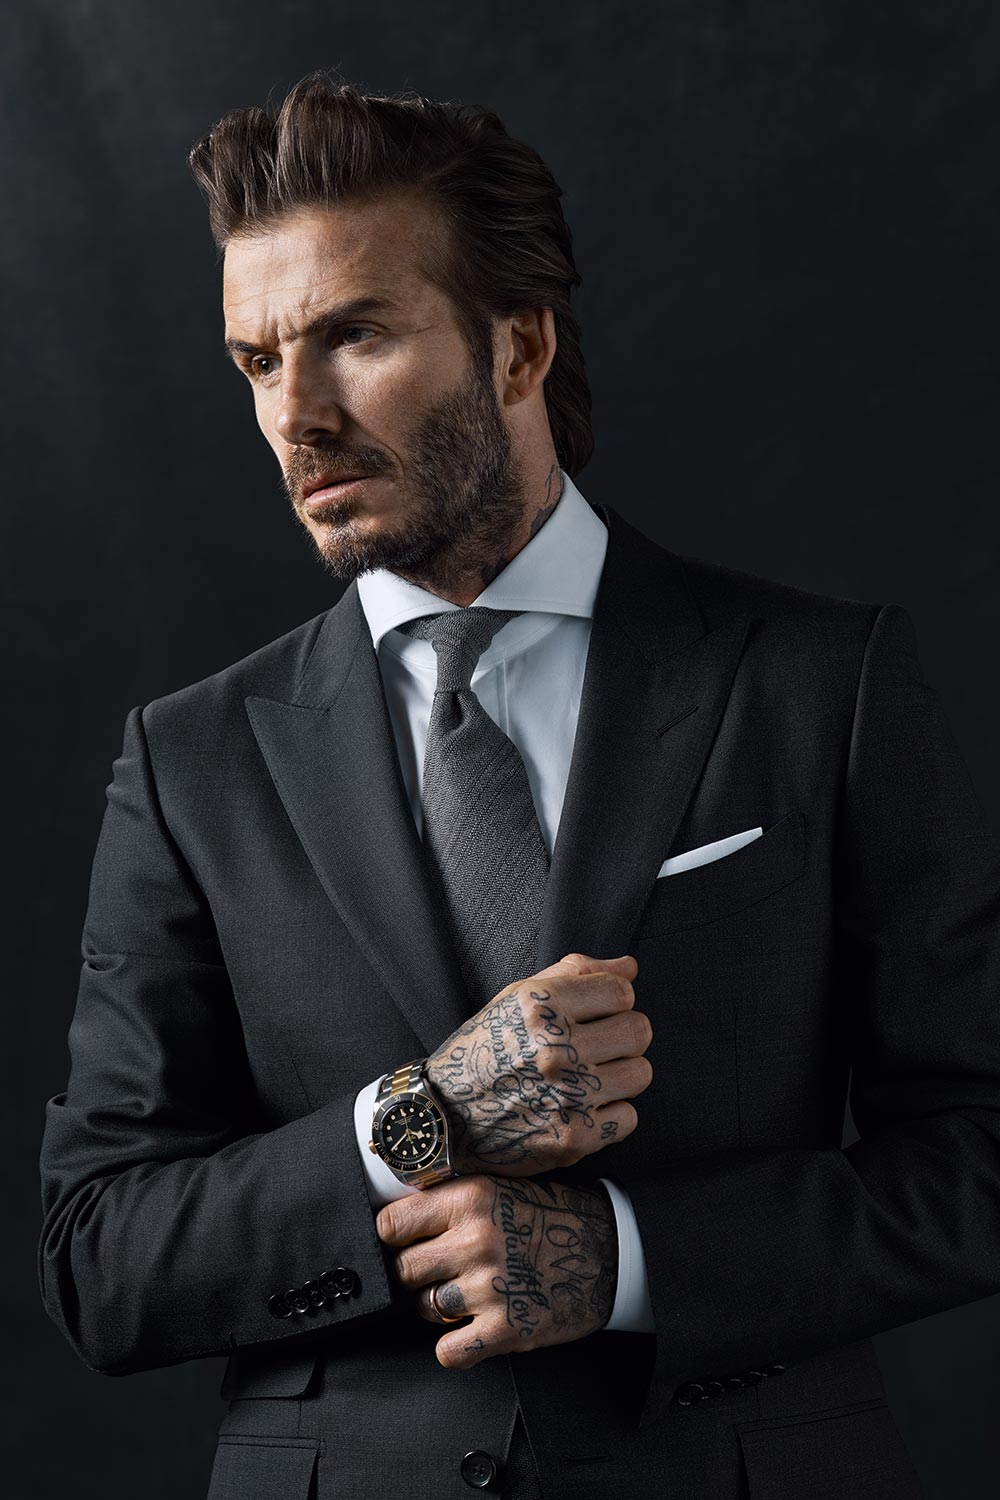 Thank you for subscribing to David Beckham email updates. You will now receive all the latest news, info and featured directly to your email. You can also follow David Beckham on Youtube, Facebook, Instagram and Google +.